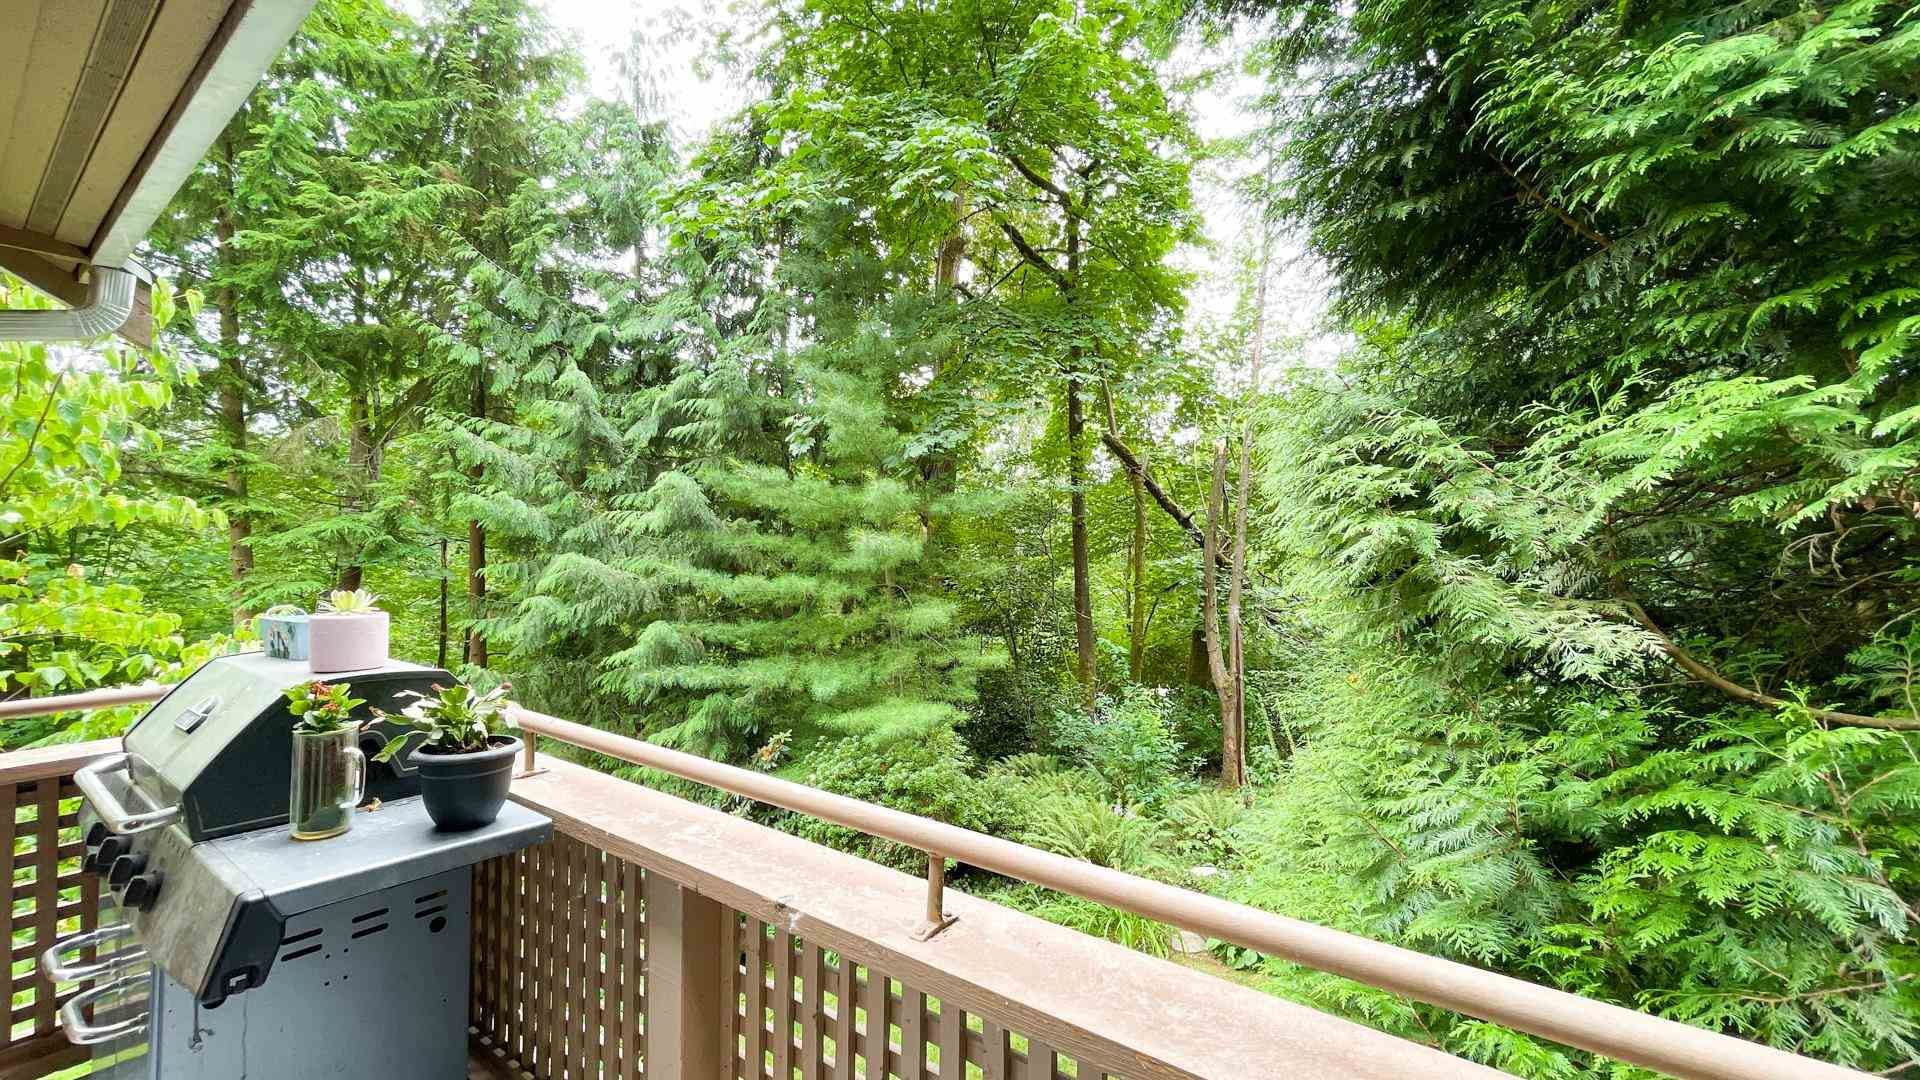 Photo 29: Photos: 66 9000 ASH GROVE CRESCENT in Burnaby: Forest Hills BN Townhouse for sale (Burnaby North)  : MLS®# R2603744